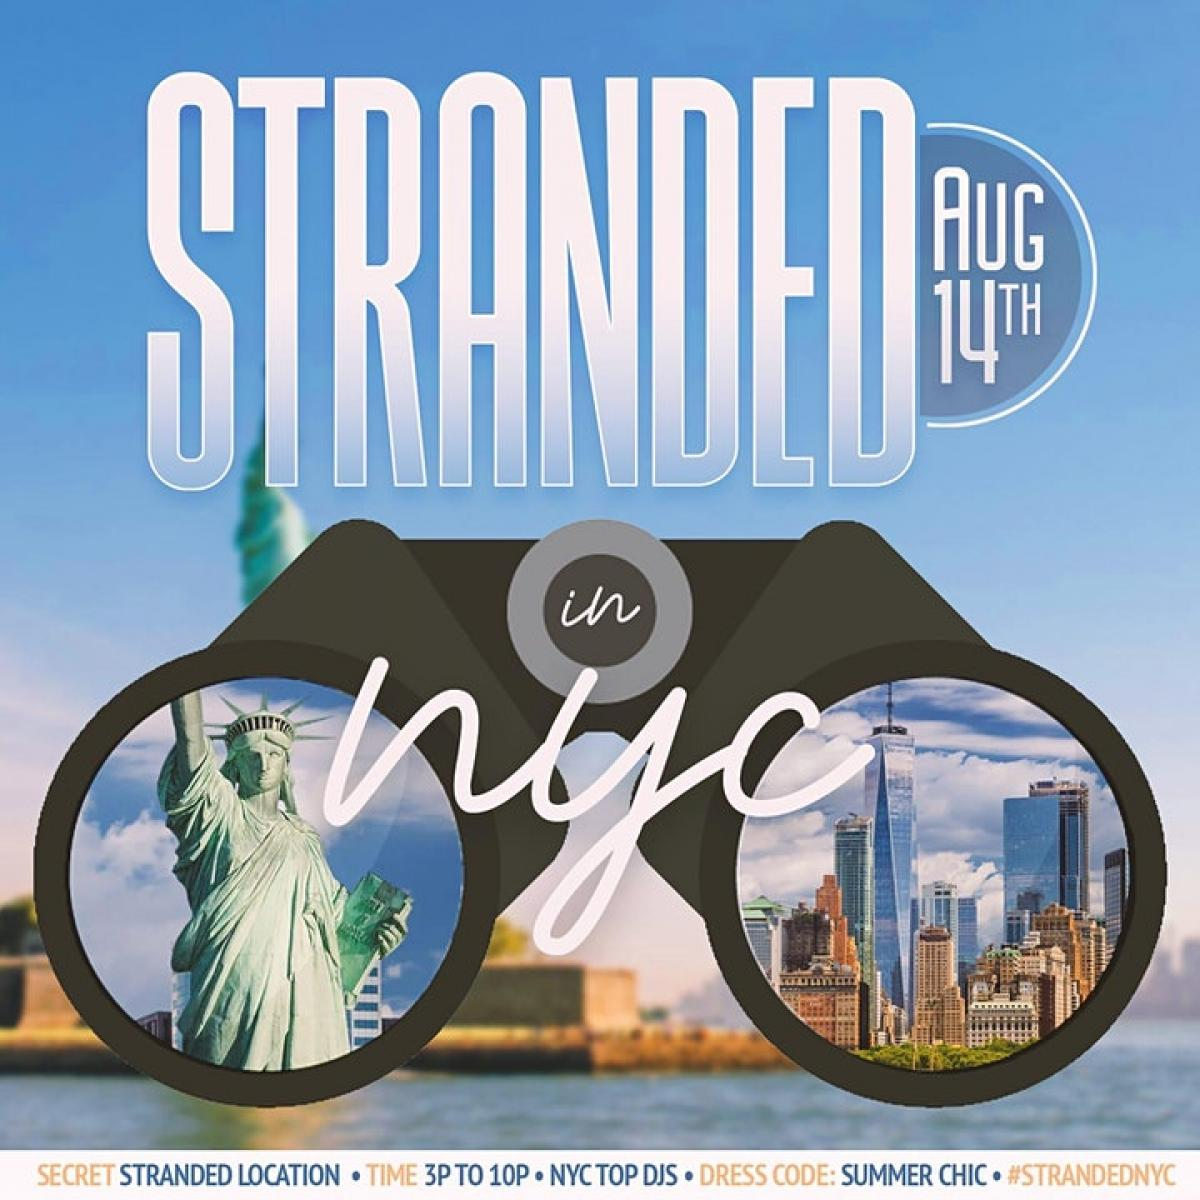 Stranded NYC flyer or graphic.